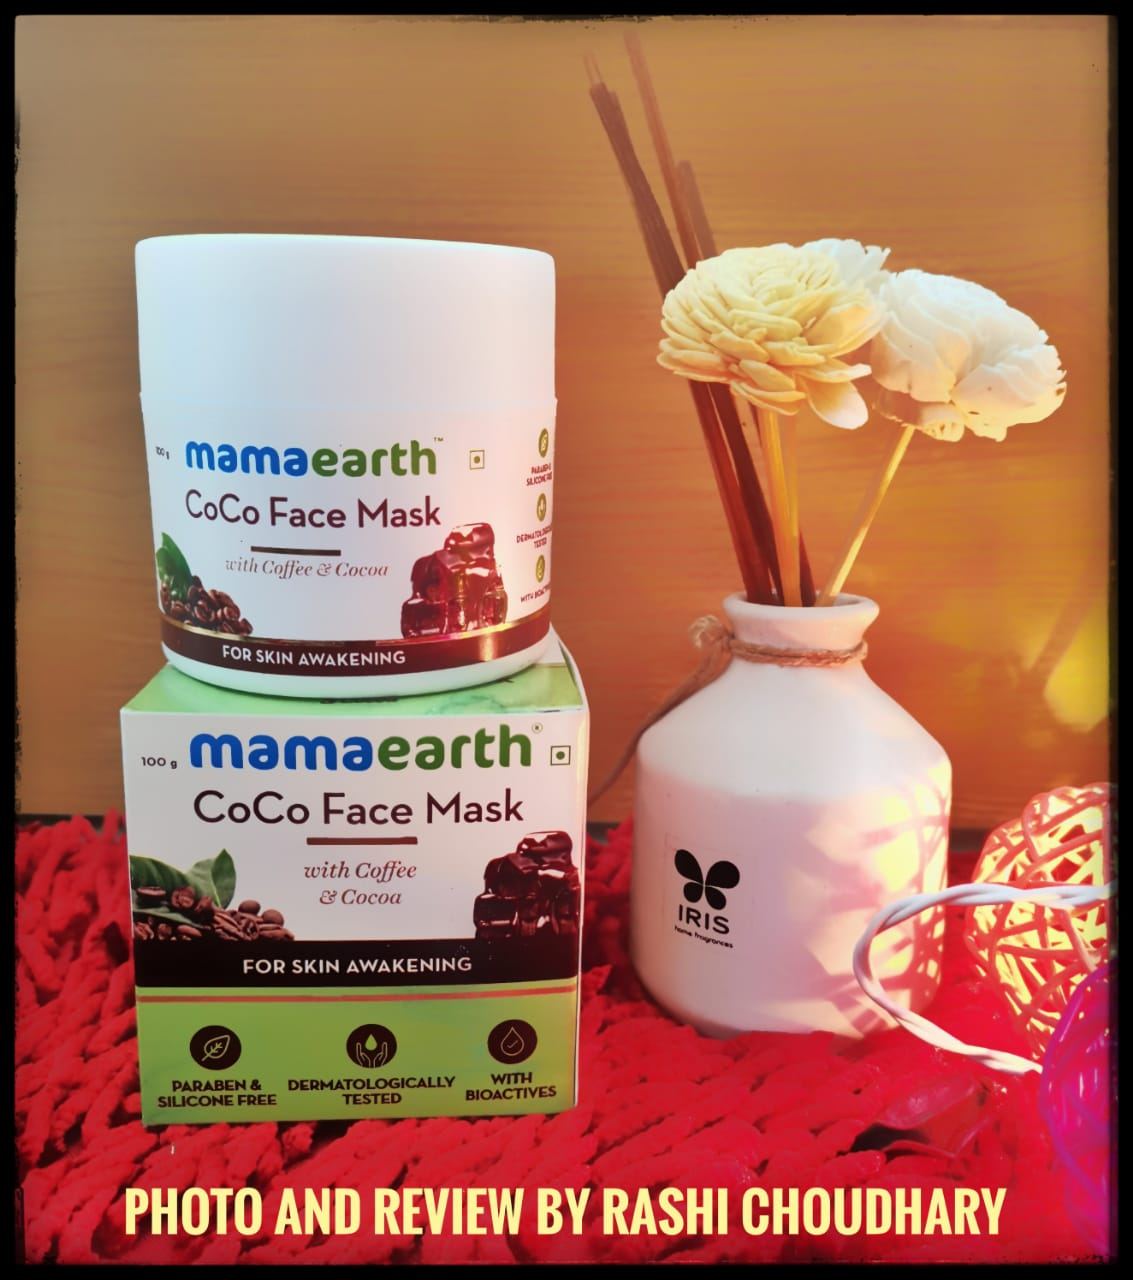 Mamaearth Coco Face Mask With Coffee & Cocoa-Love the Product, fully recommended-By rashi.choudhary@live.com-2